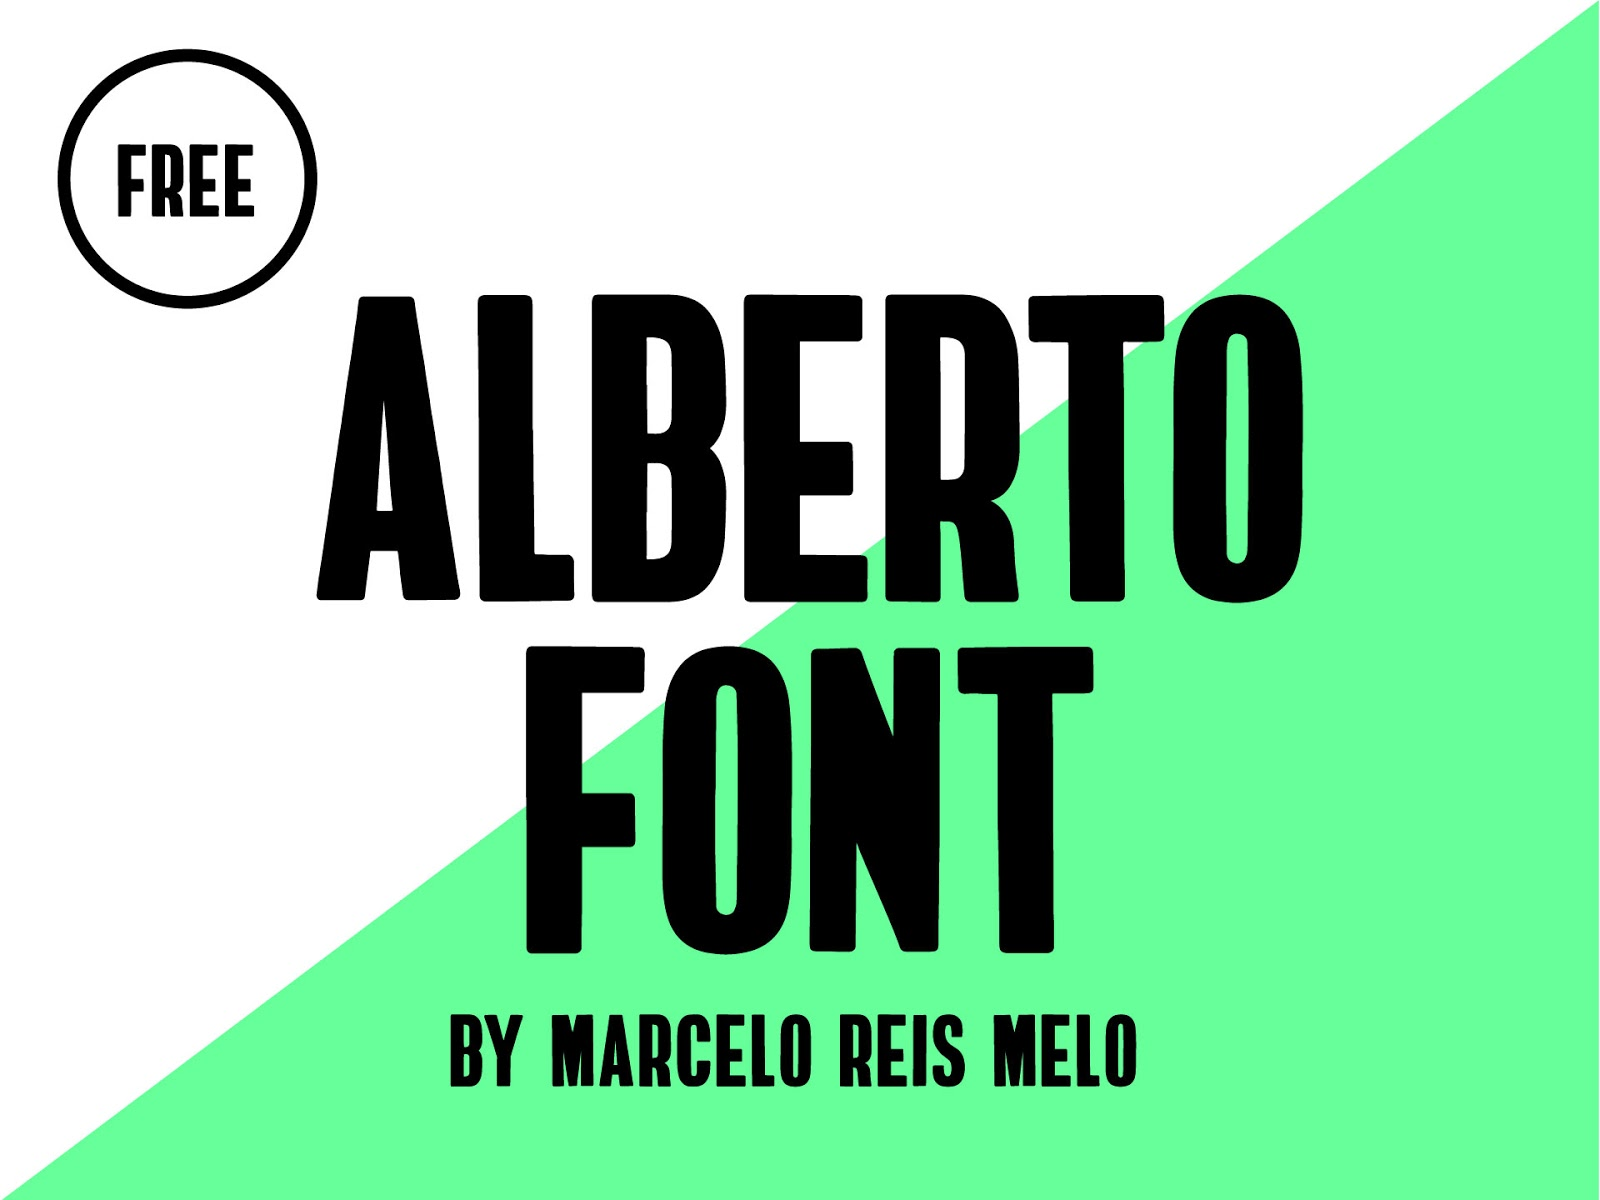 Fonts 1 - 10 of 2 194